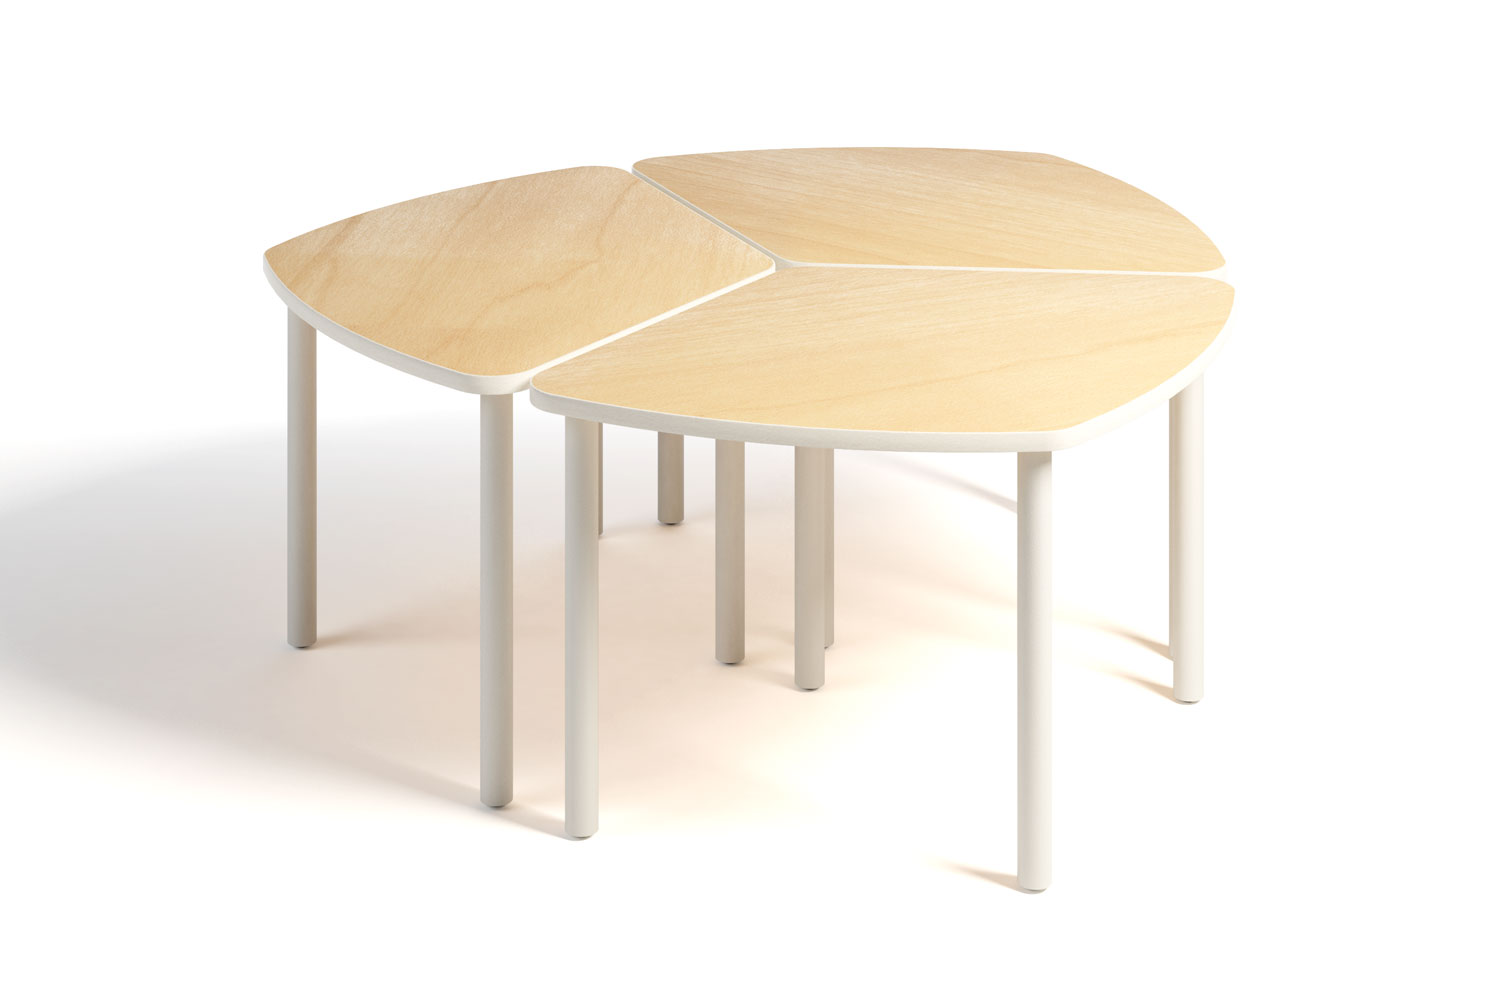 Tilted Square Table Group